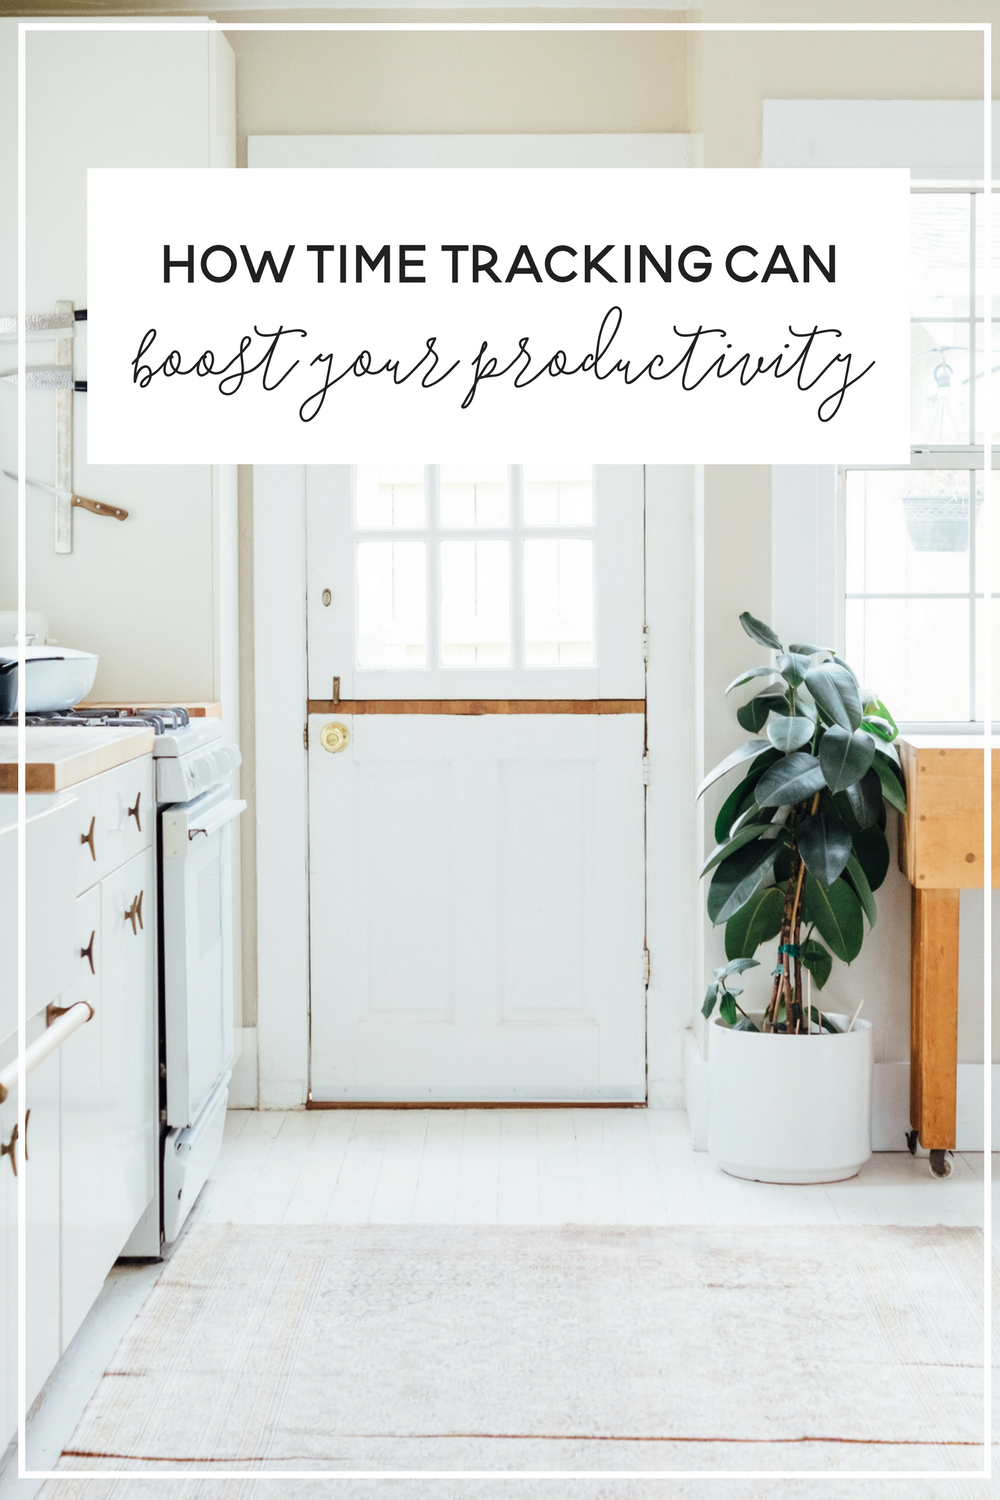 How Time Tracking Can Boost Your Productivity